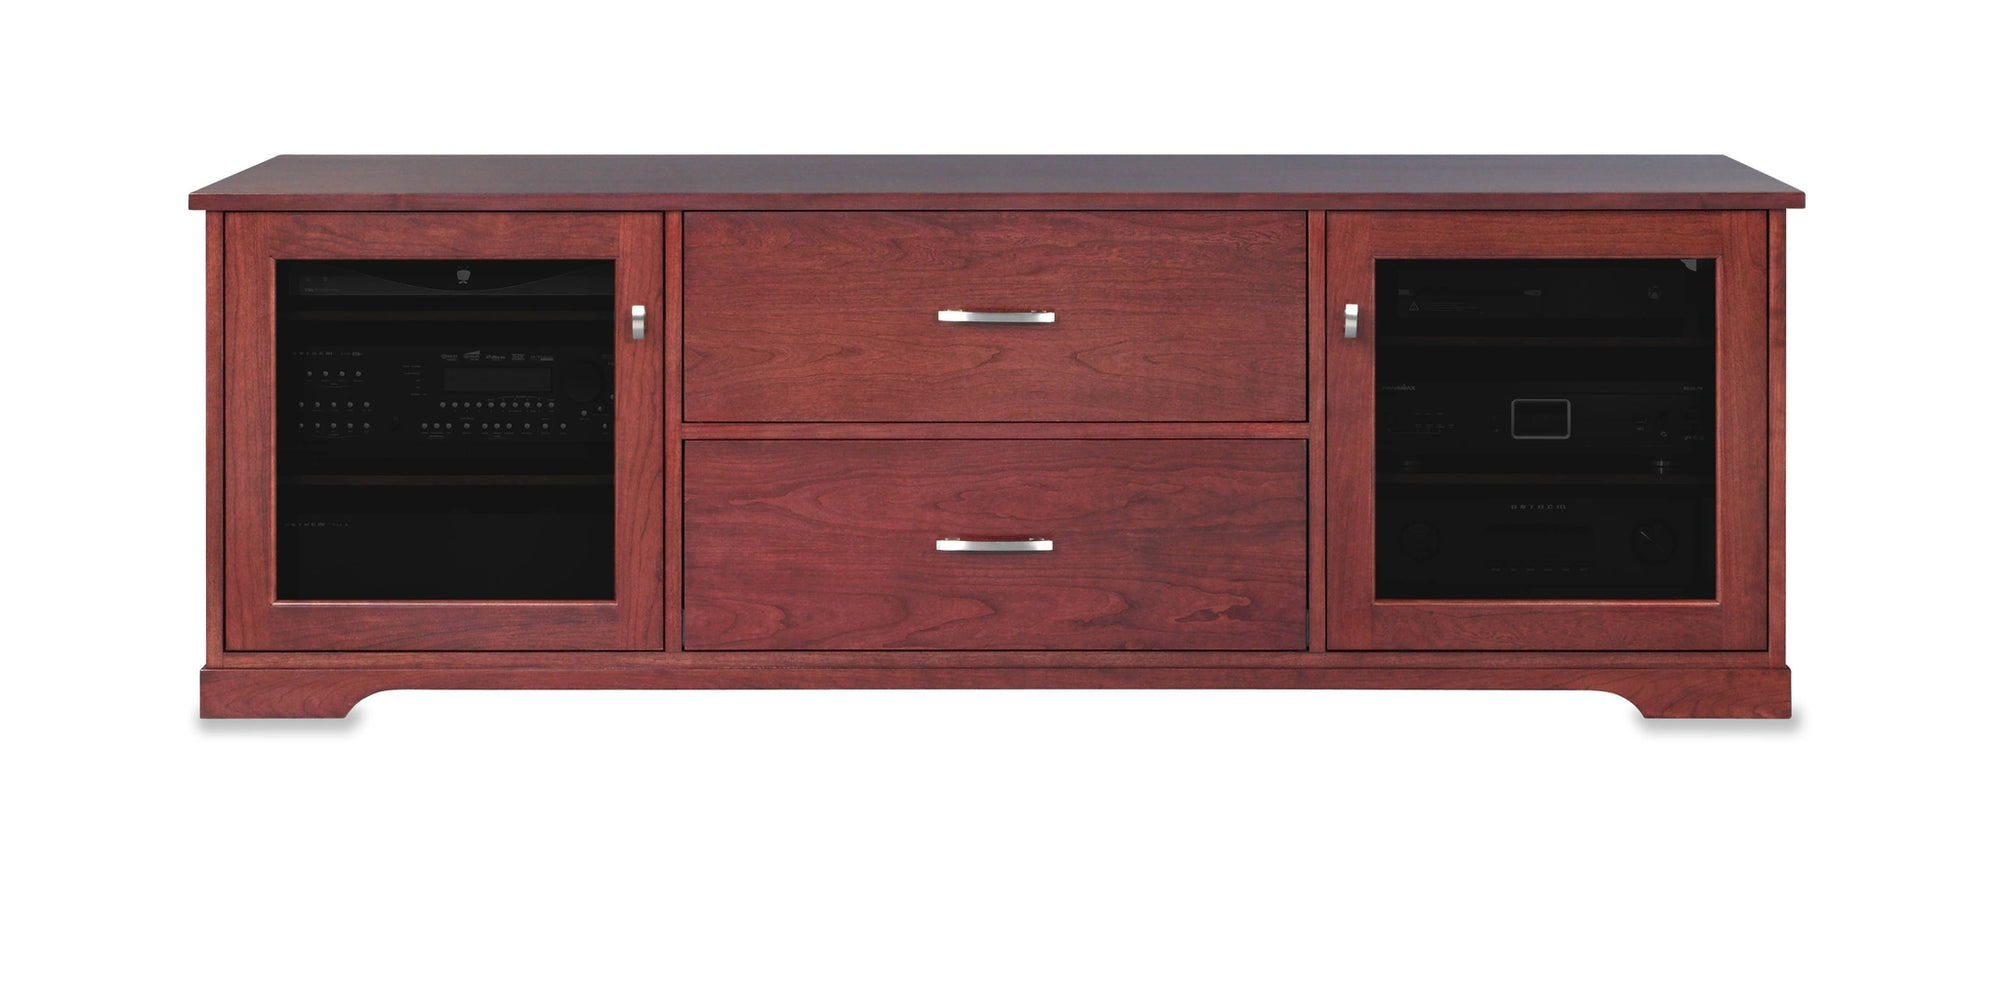 Horizon Ex 72 Inch Wood Media Console (2 Media Drawers)